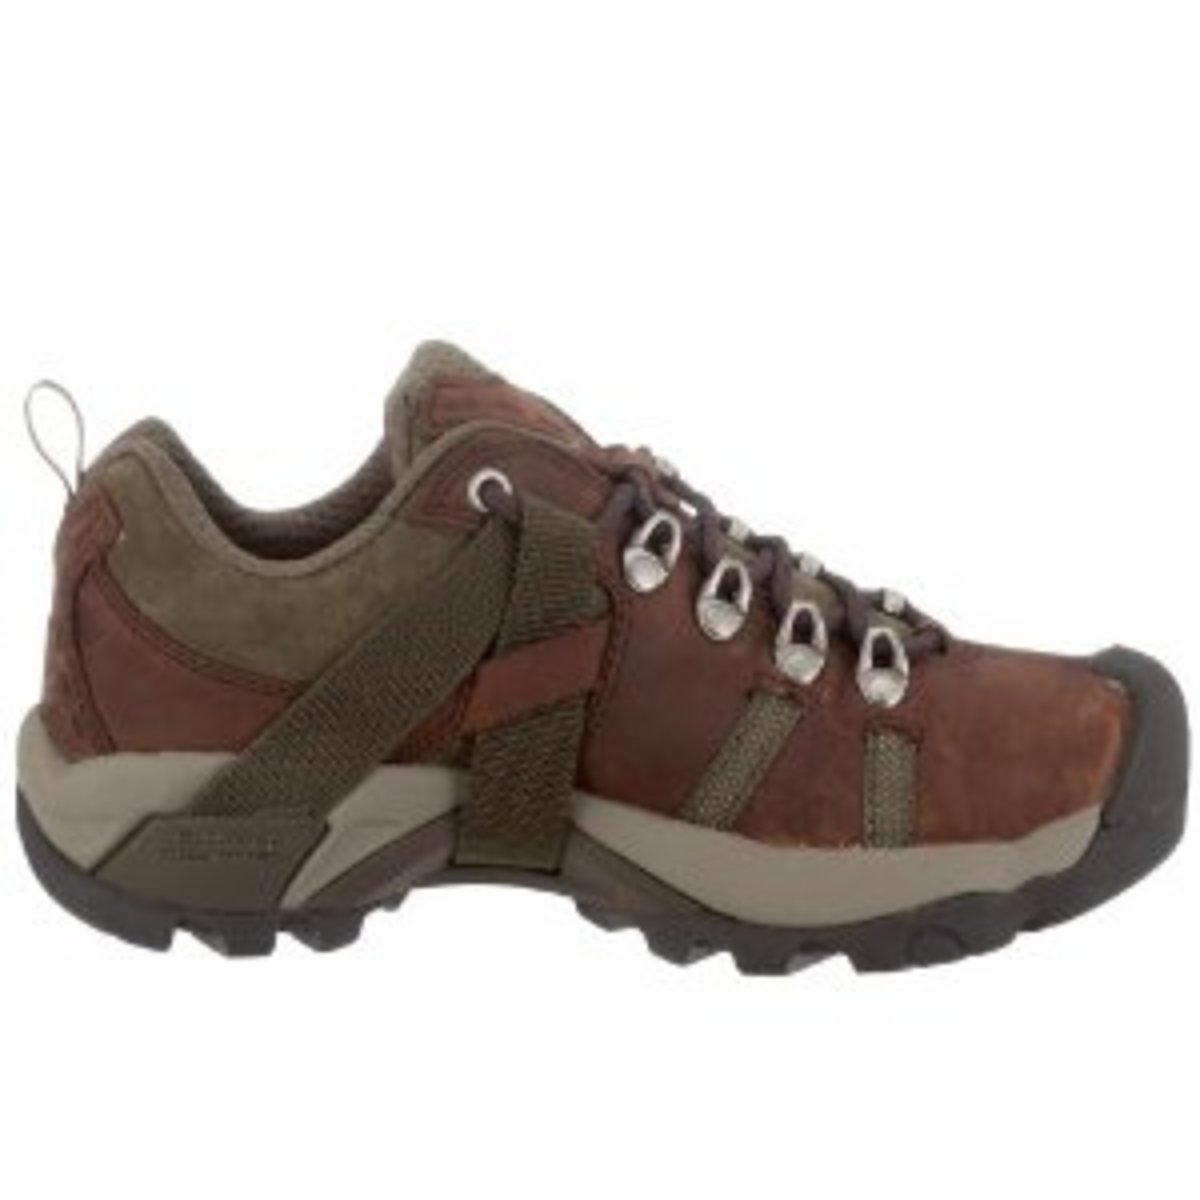 Teva Women's Ossagon Event Hiking Shoe